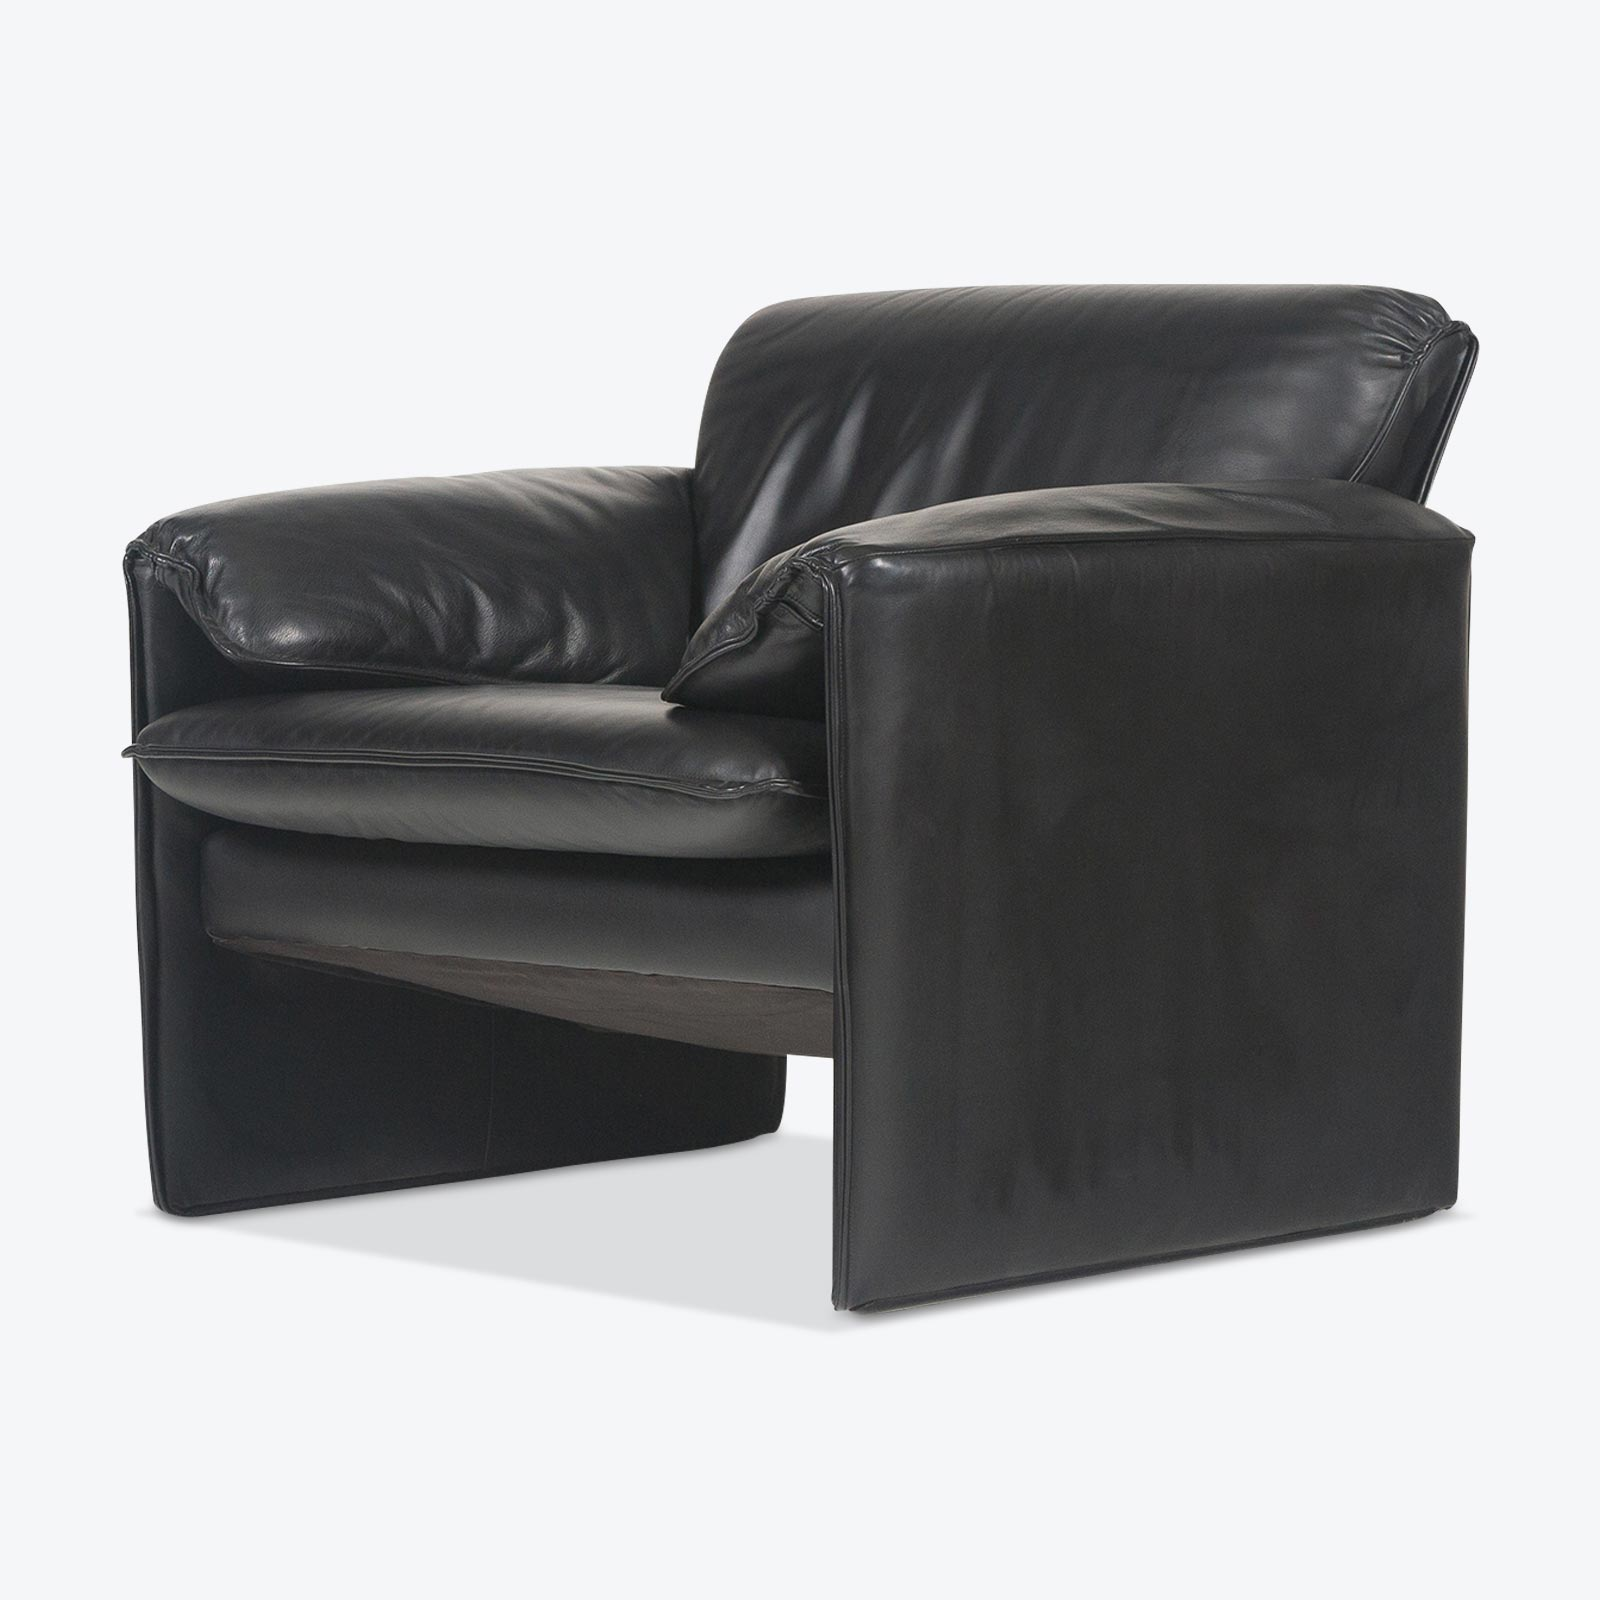 Bora Armchair by Leolux in Black Leather, 1960s ...